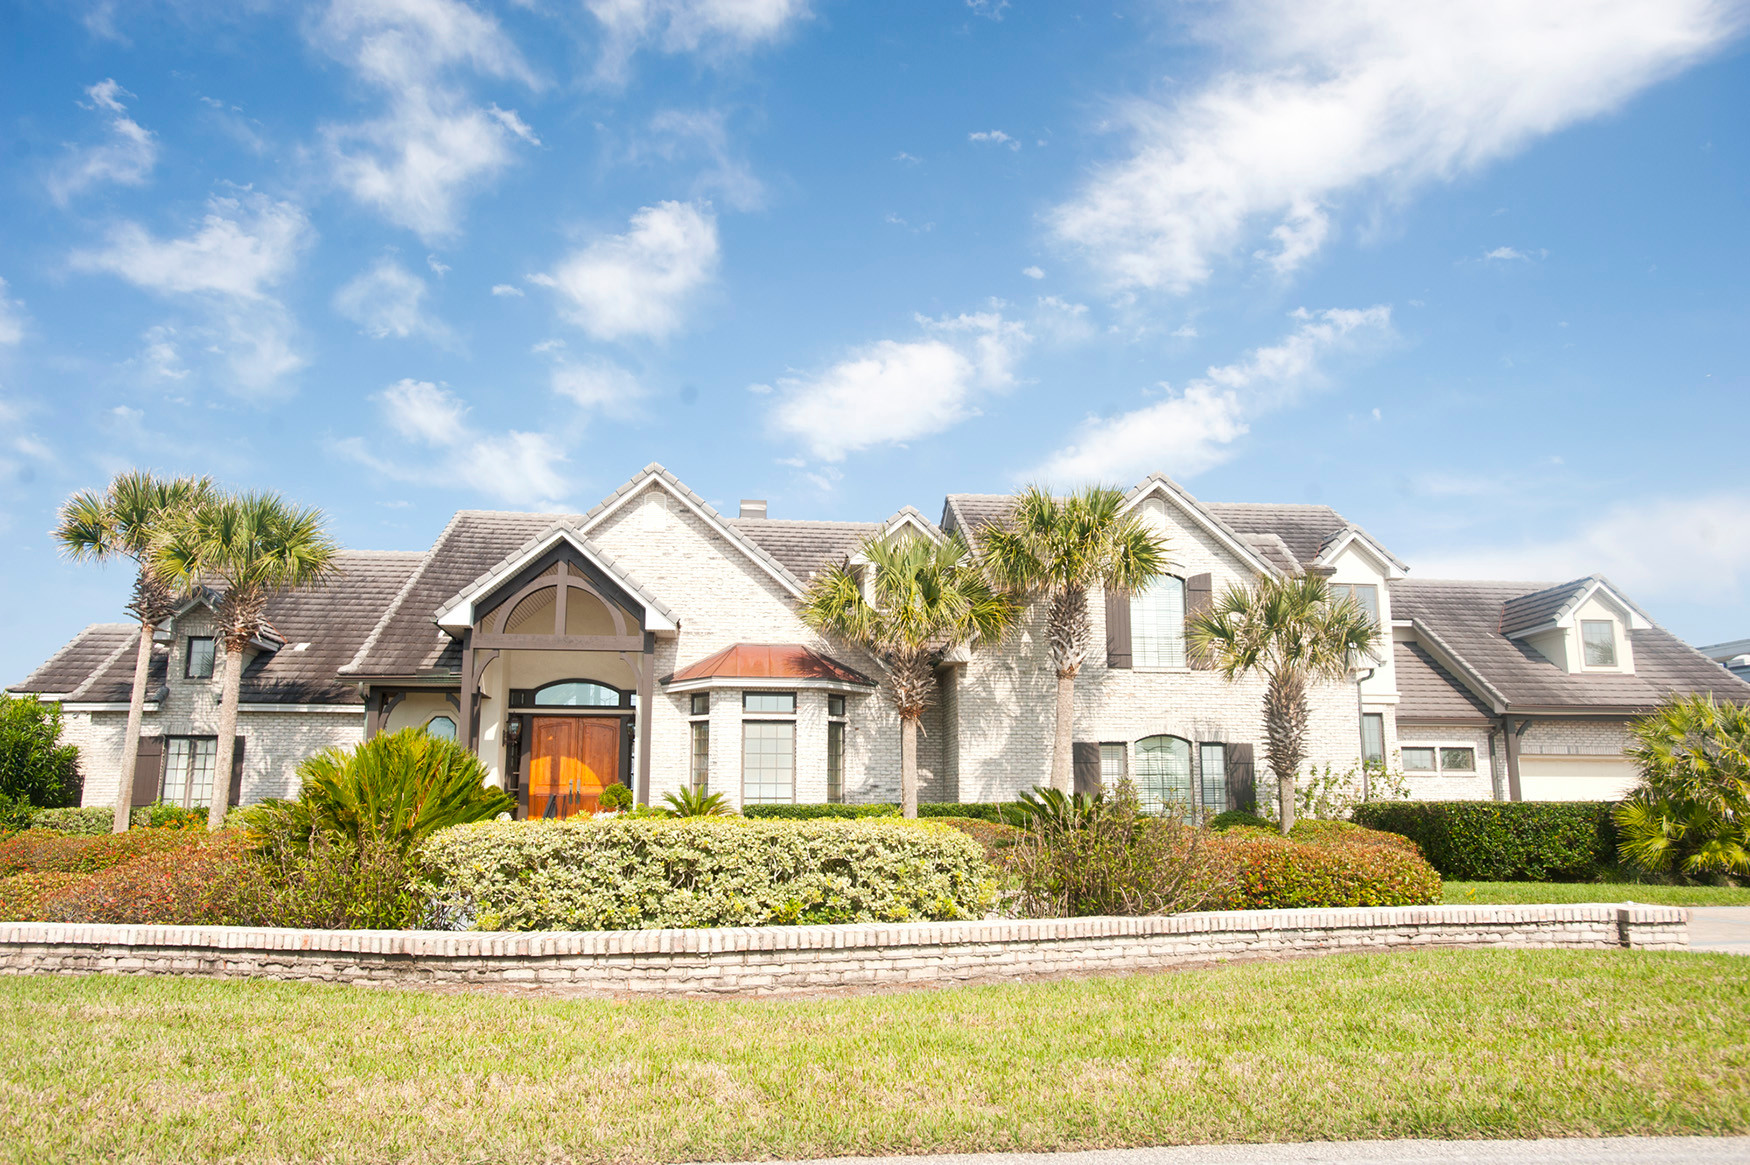 10. Robinson Residence